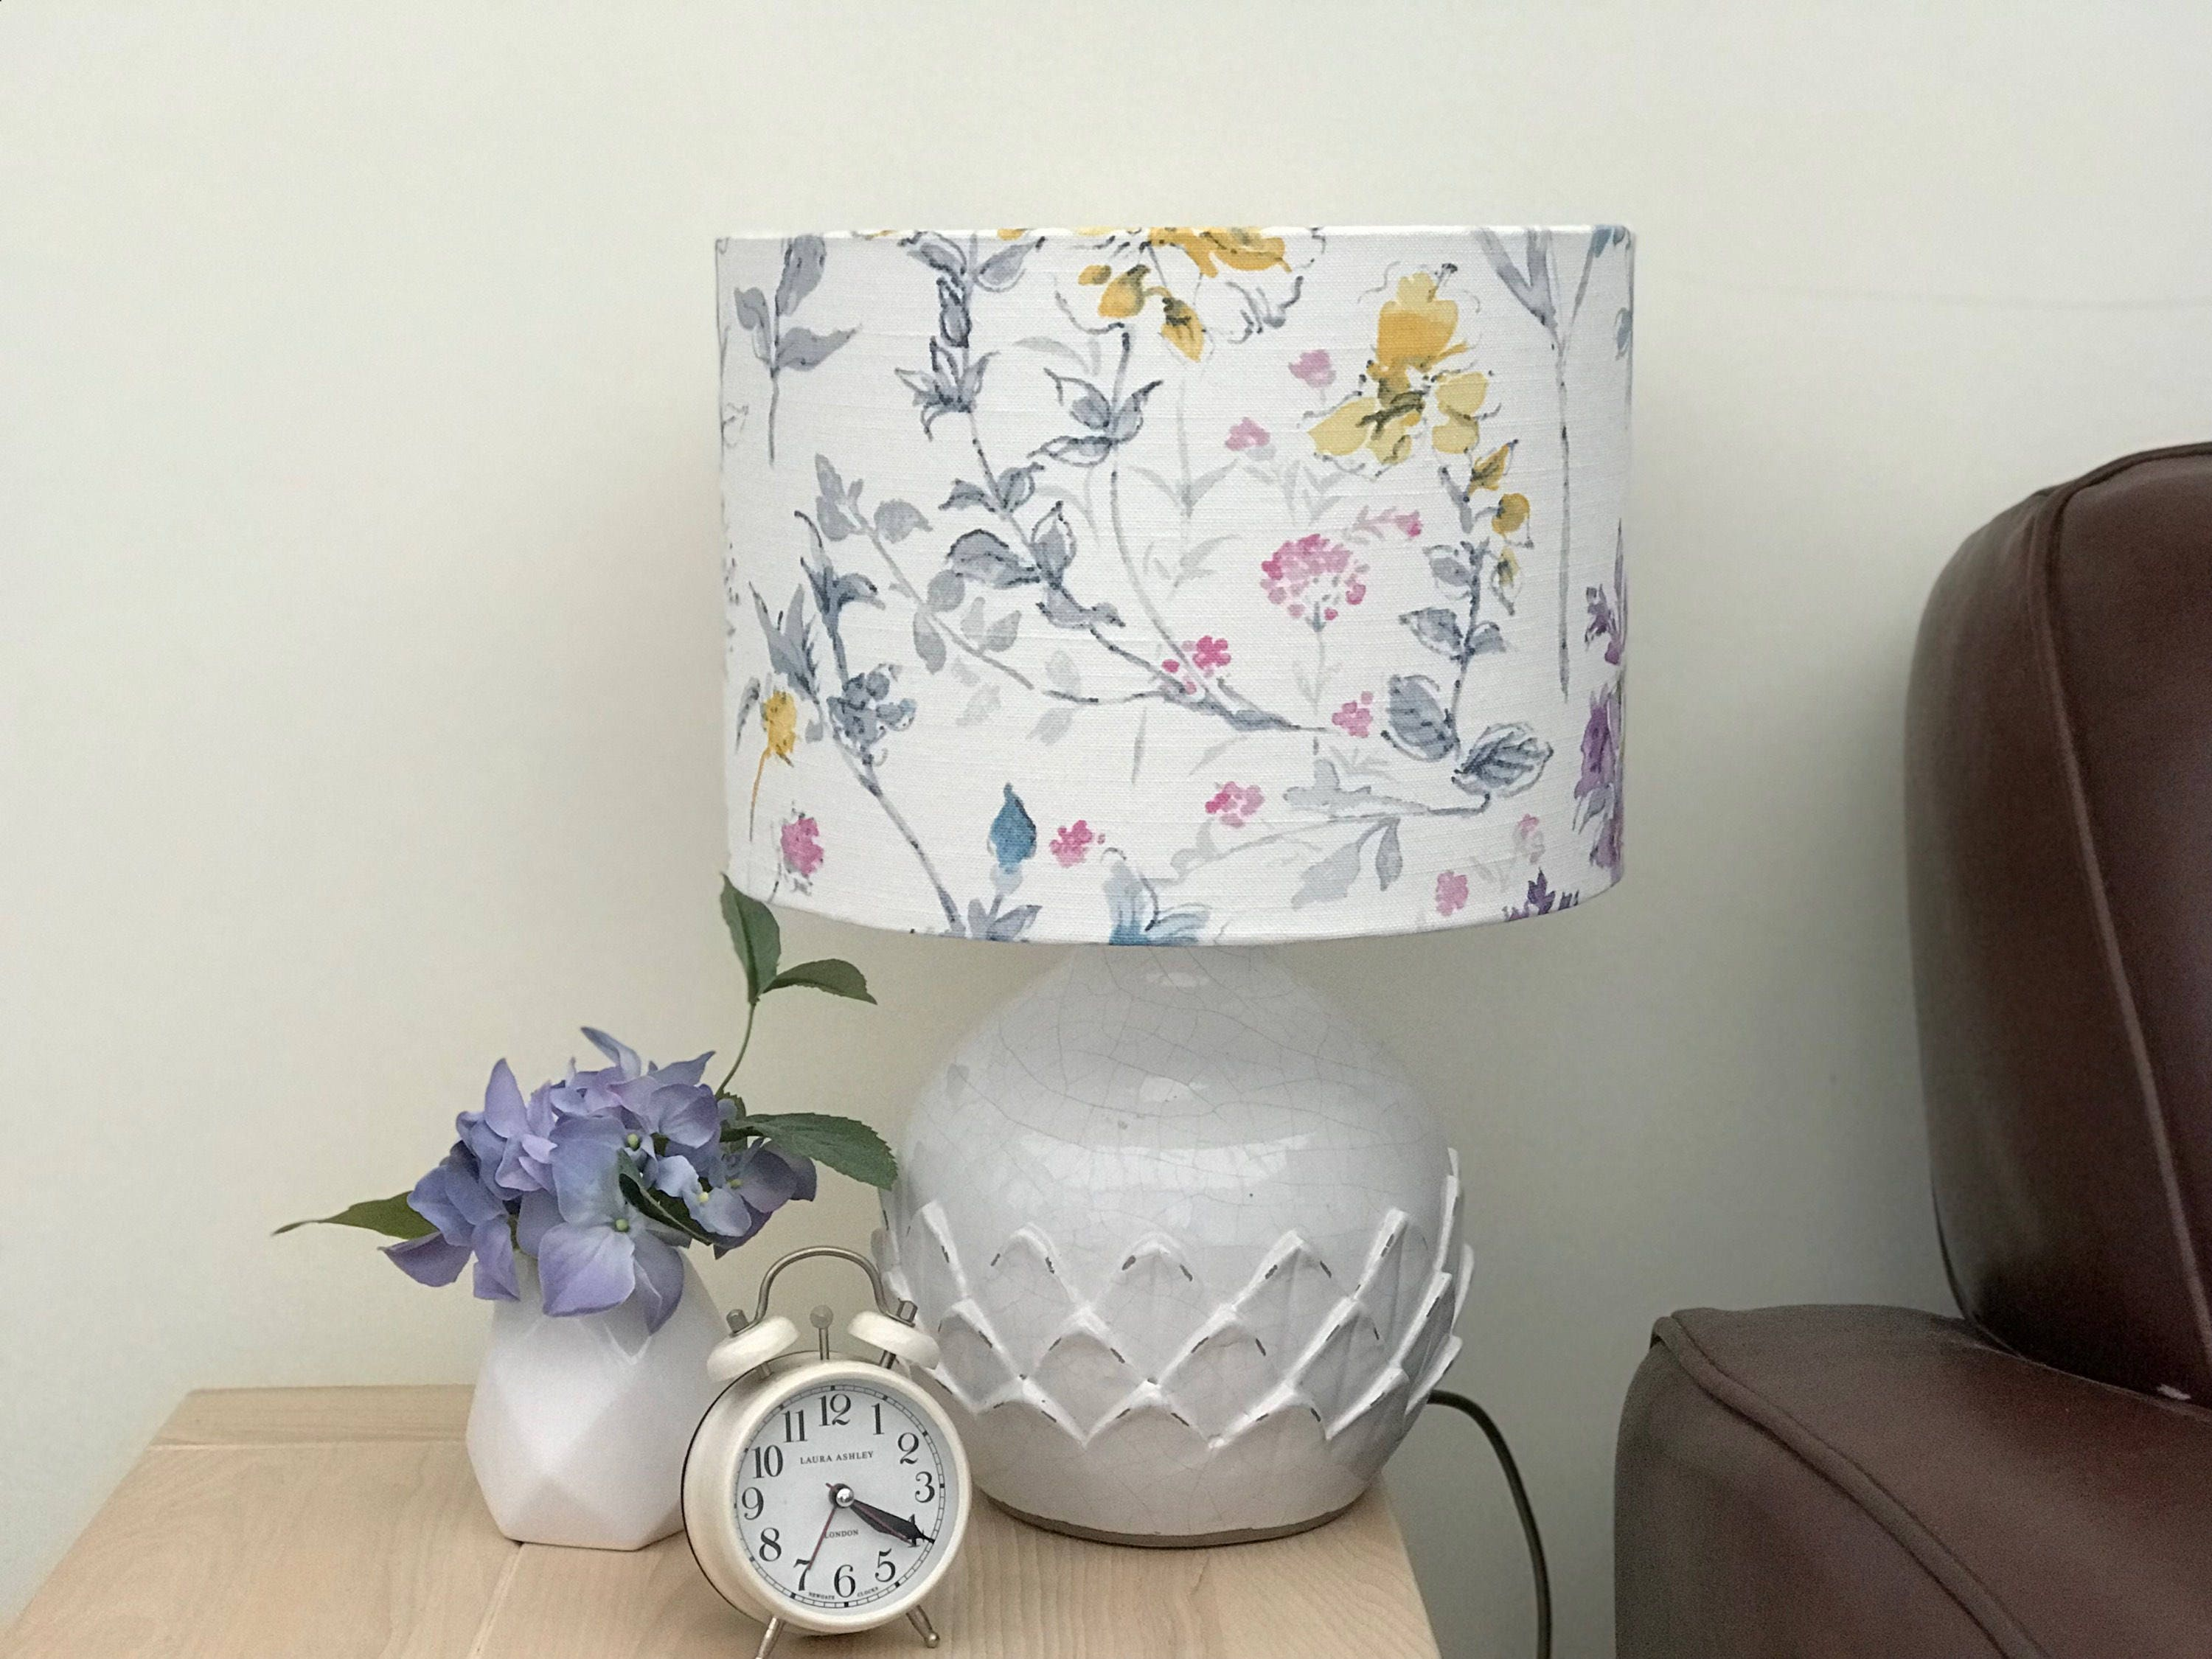 Lampshadehome decortable lampfloor lampdrum lamp shadelighting lampshadehome decortable lampfloor lampdrum lamp shadelightingfloralshabby chiclaura ashleypendantwild meadowmeadow flowers aloadofball Images